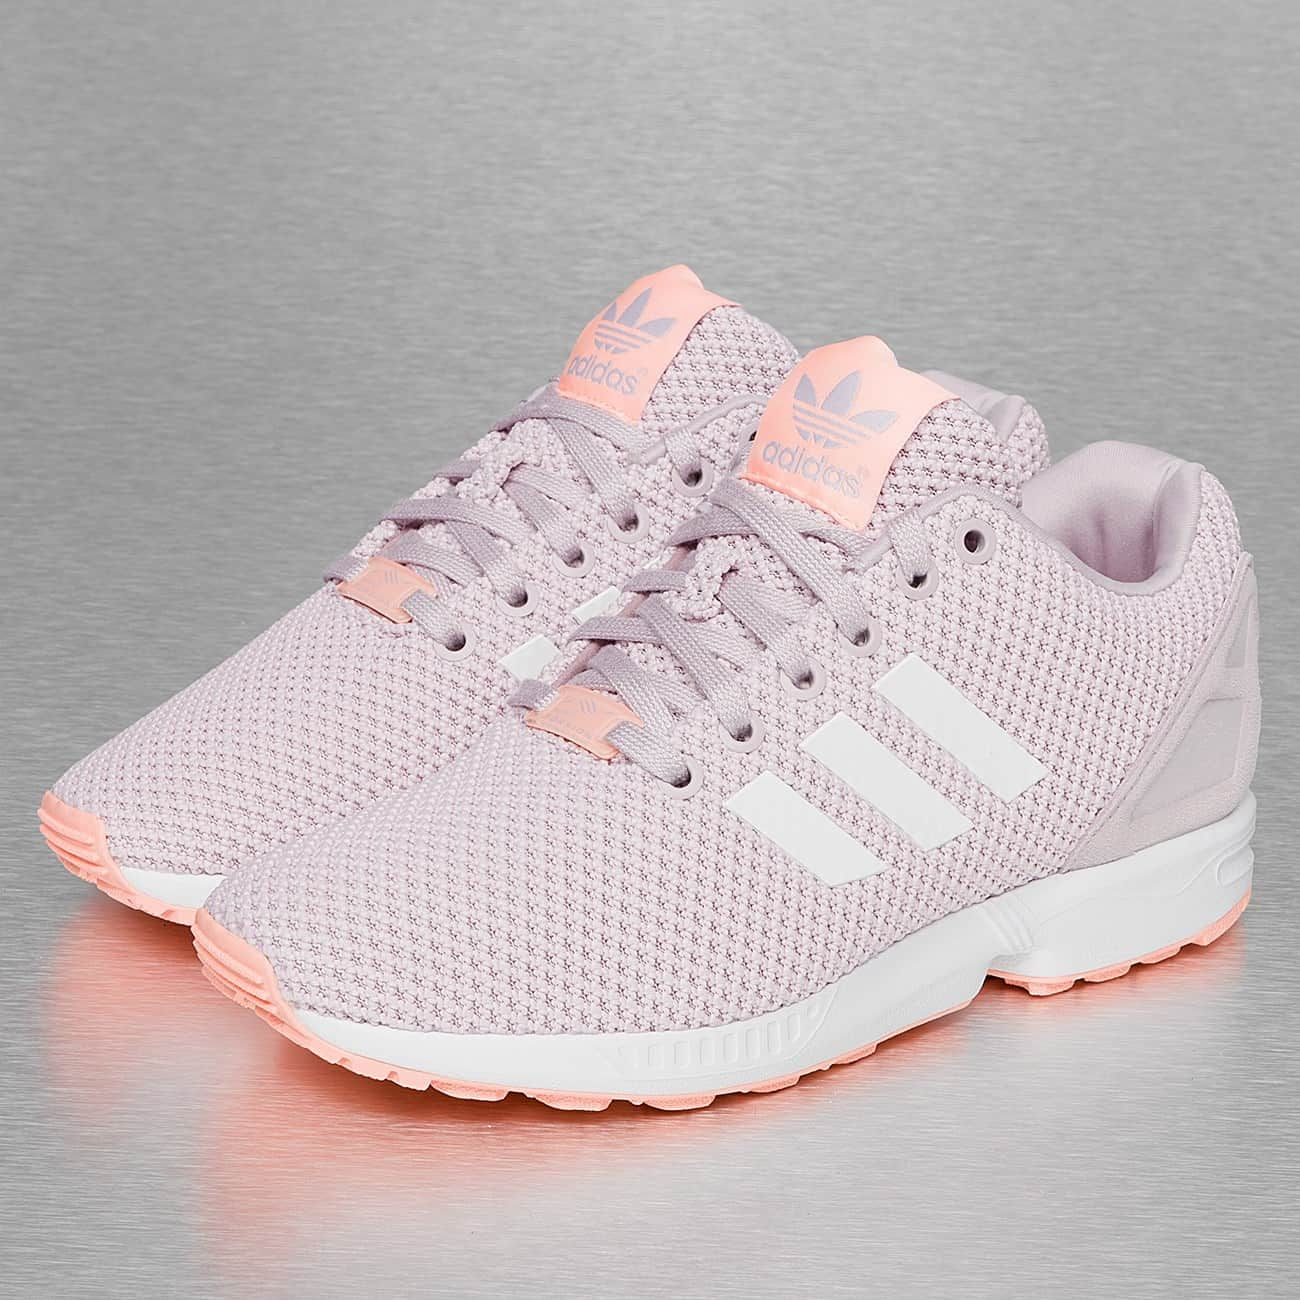 $39 adidas shoes on | Adidas shoes women, Sneakers, Adidas women